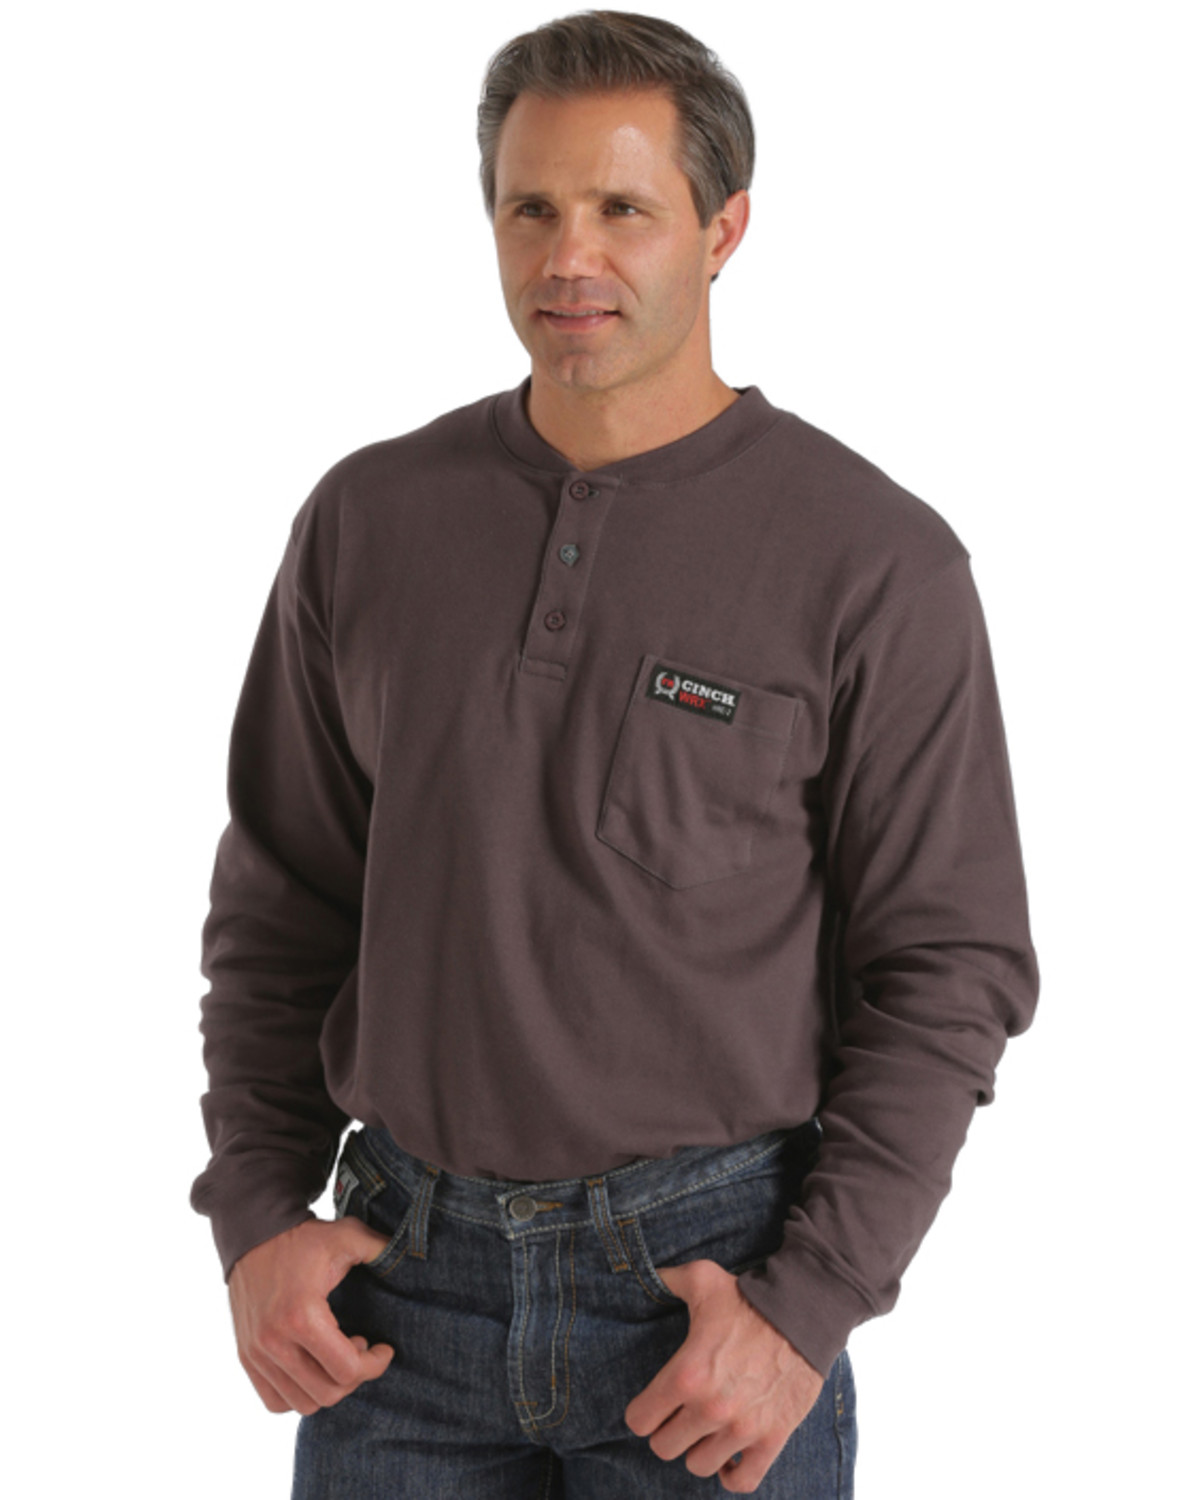 Cinch wrx flame resistant long sleeve henley shirt sheplers for Cinch flame resistant shirts